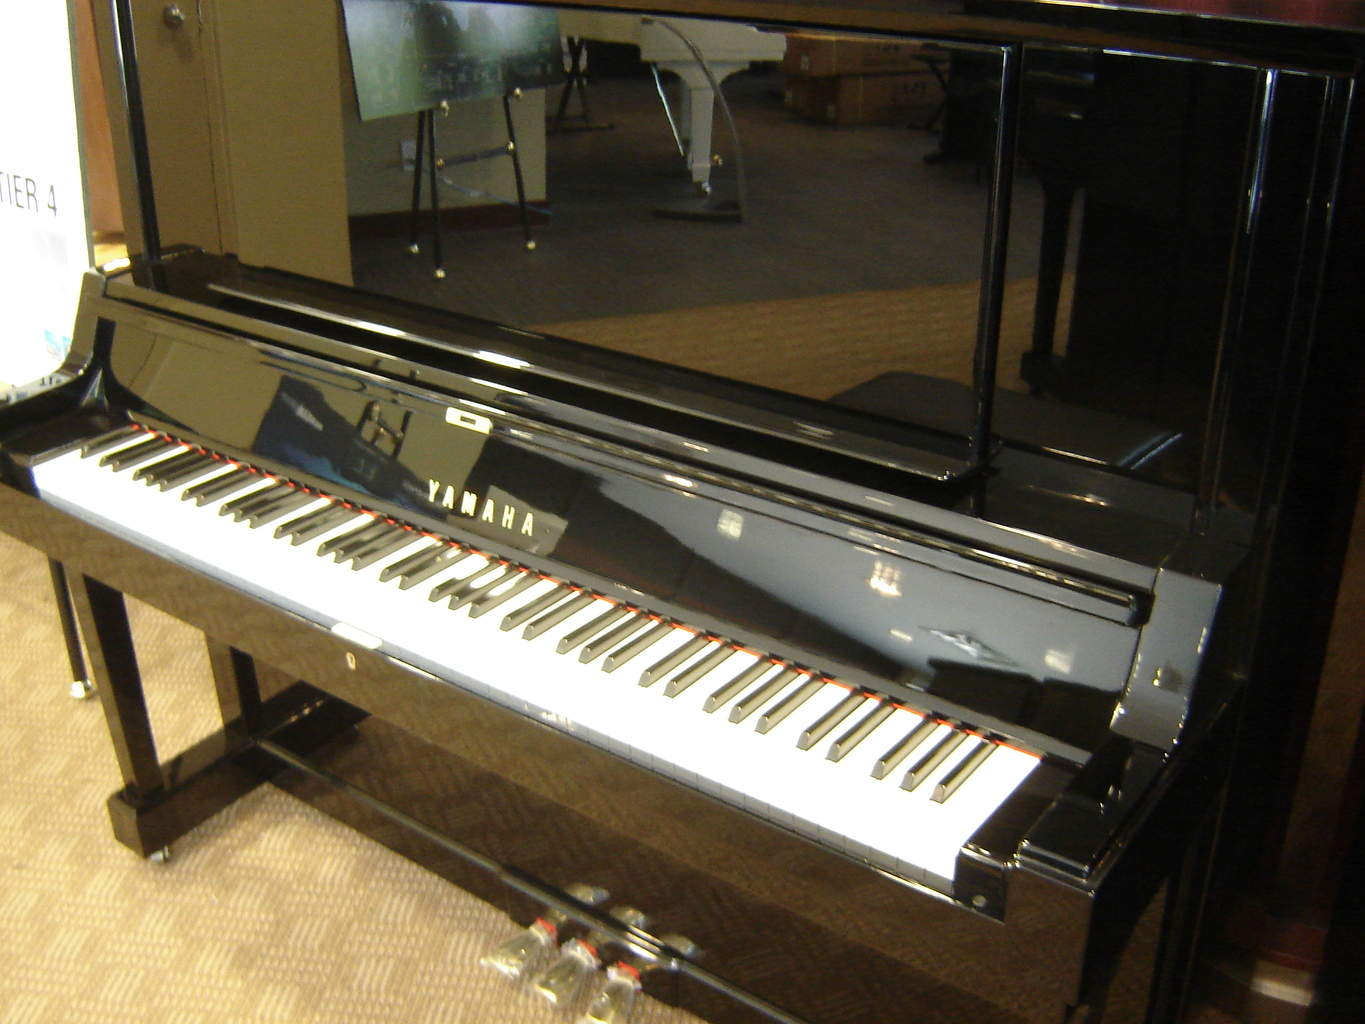 Used yamaha y series piano merriam pianos for Yamaha music school locations